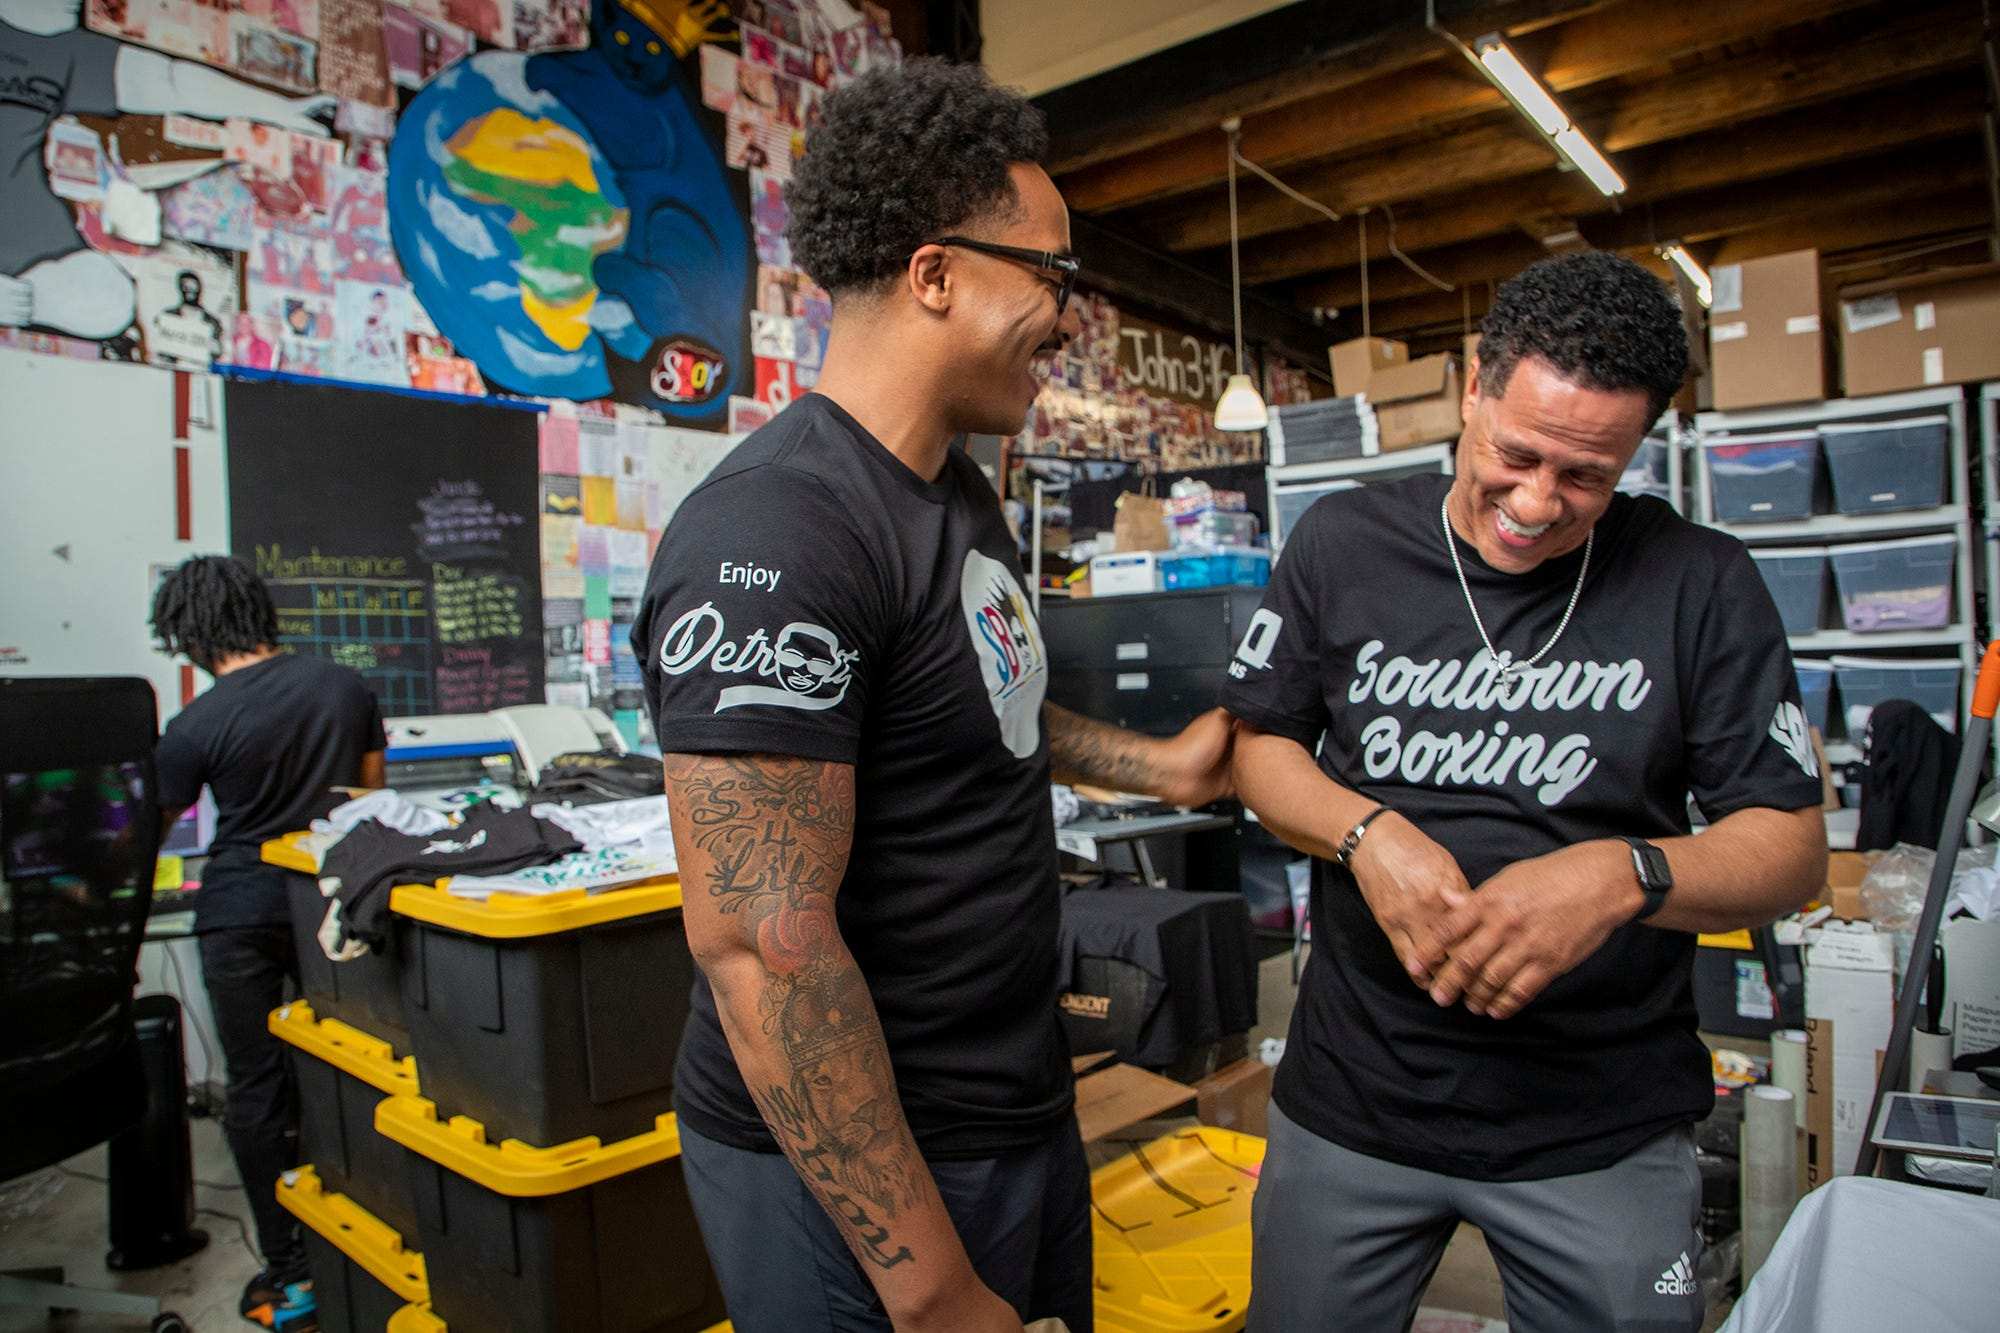 """David Woods Jr., 33, left, shares a laugh with his father David 'Bing"""" Shumate, 58, as they work making t-shirts for a customer order at his shop SBOY Printing in Detroit on June 18, 2021. Woods' dream started almost 25 years ago when he decided to start Enjoy Detroit's father company, SBOY (Successful Brothers of Youth) Printing, inside of a dollar store owned by his father."""